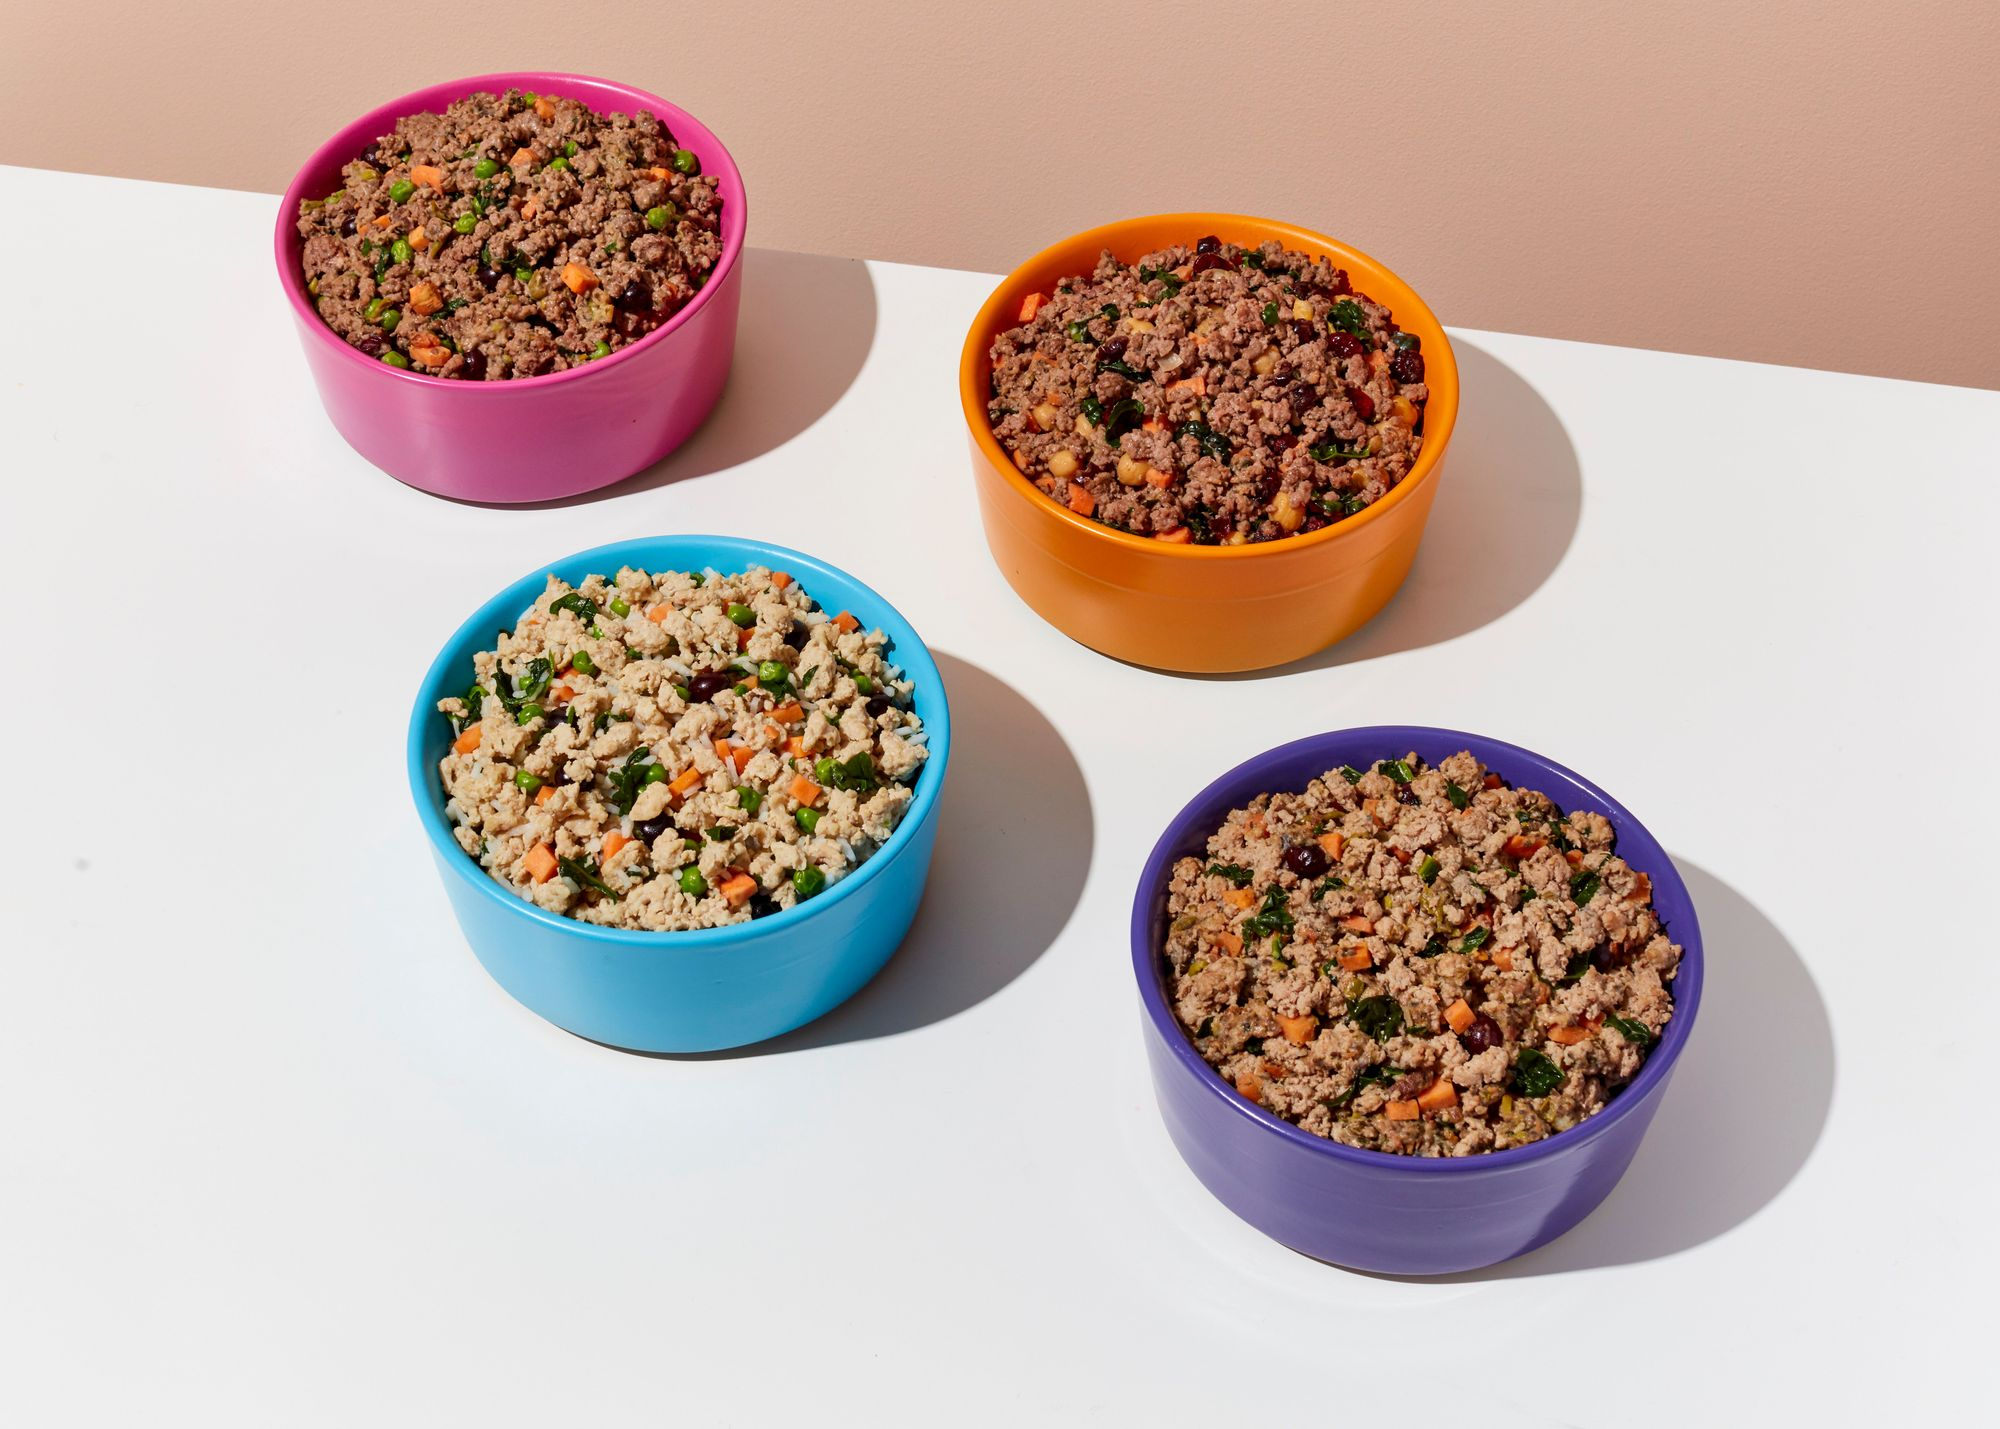 ollie-s-freshly-cooked-dog-food-in-colorful-bowls-on-white-table